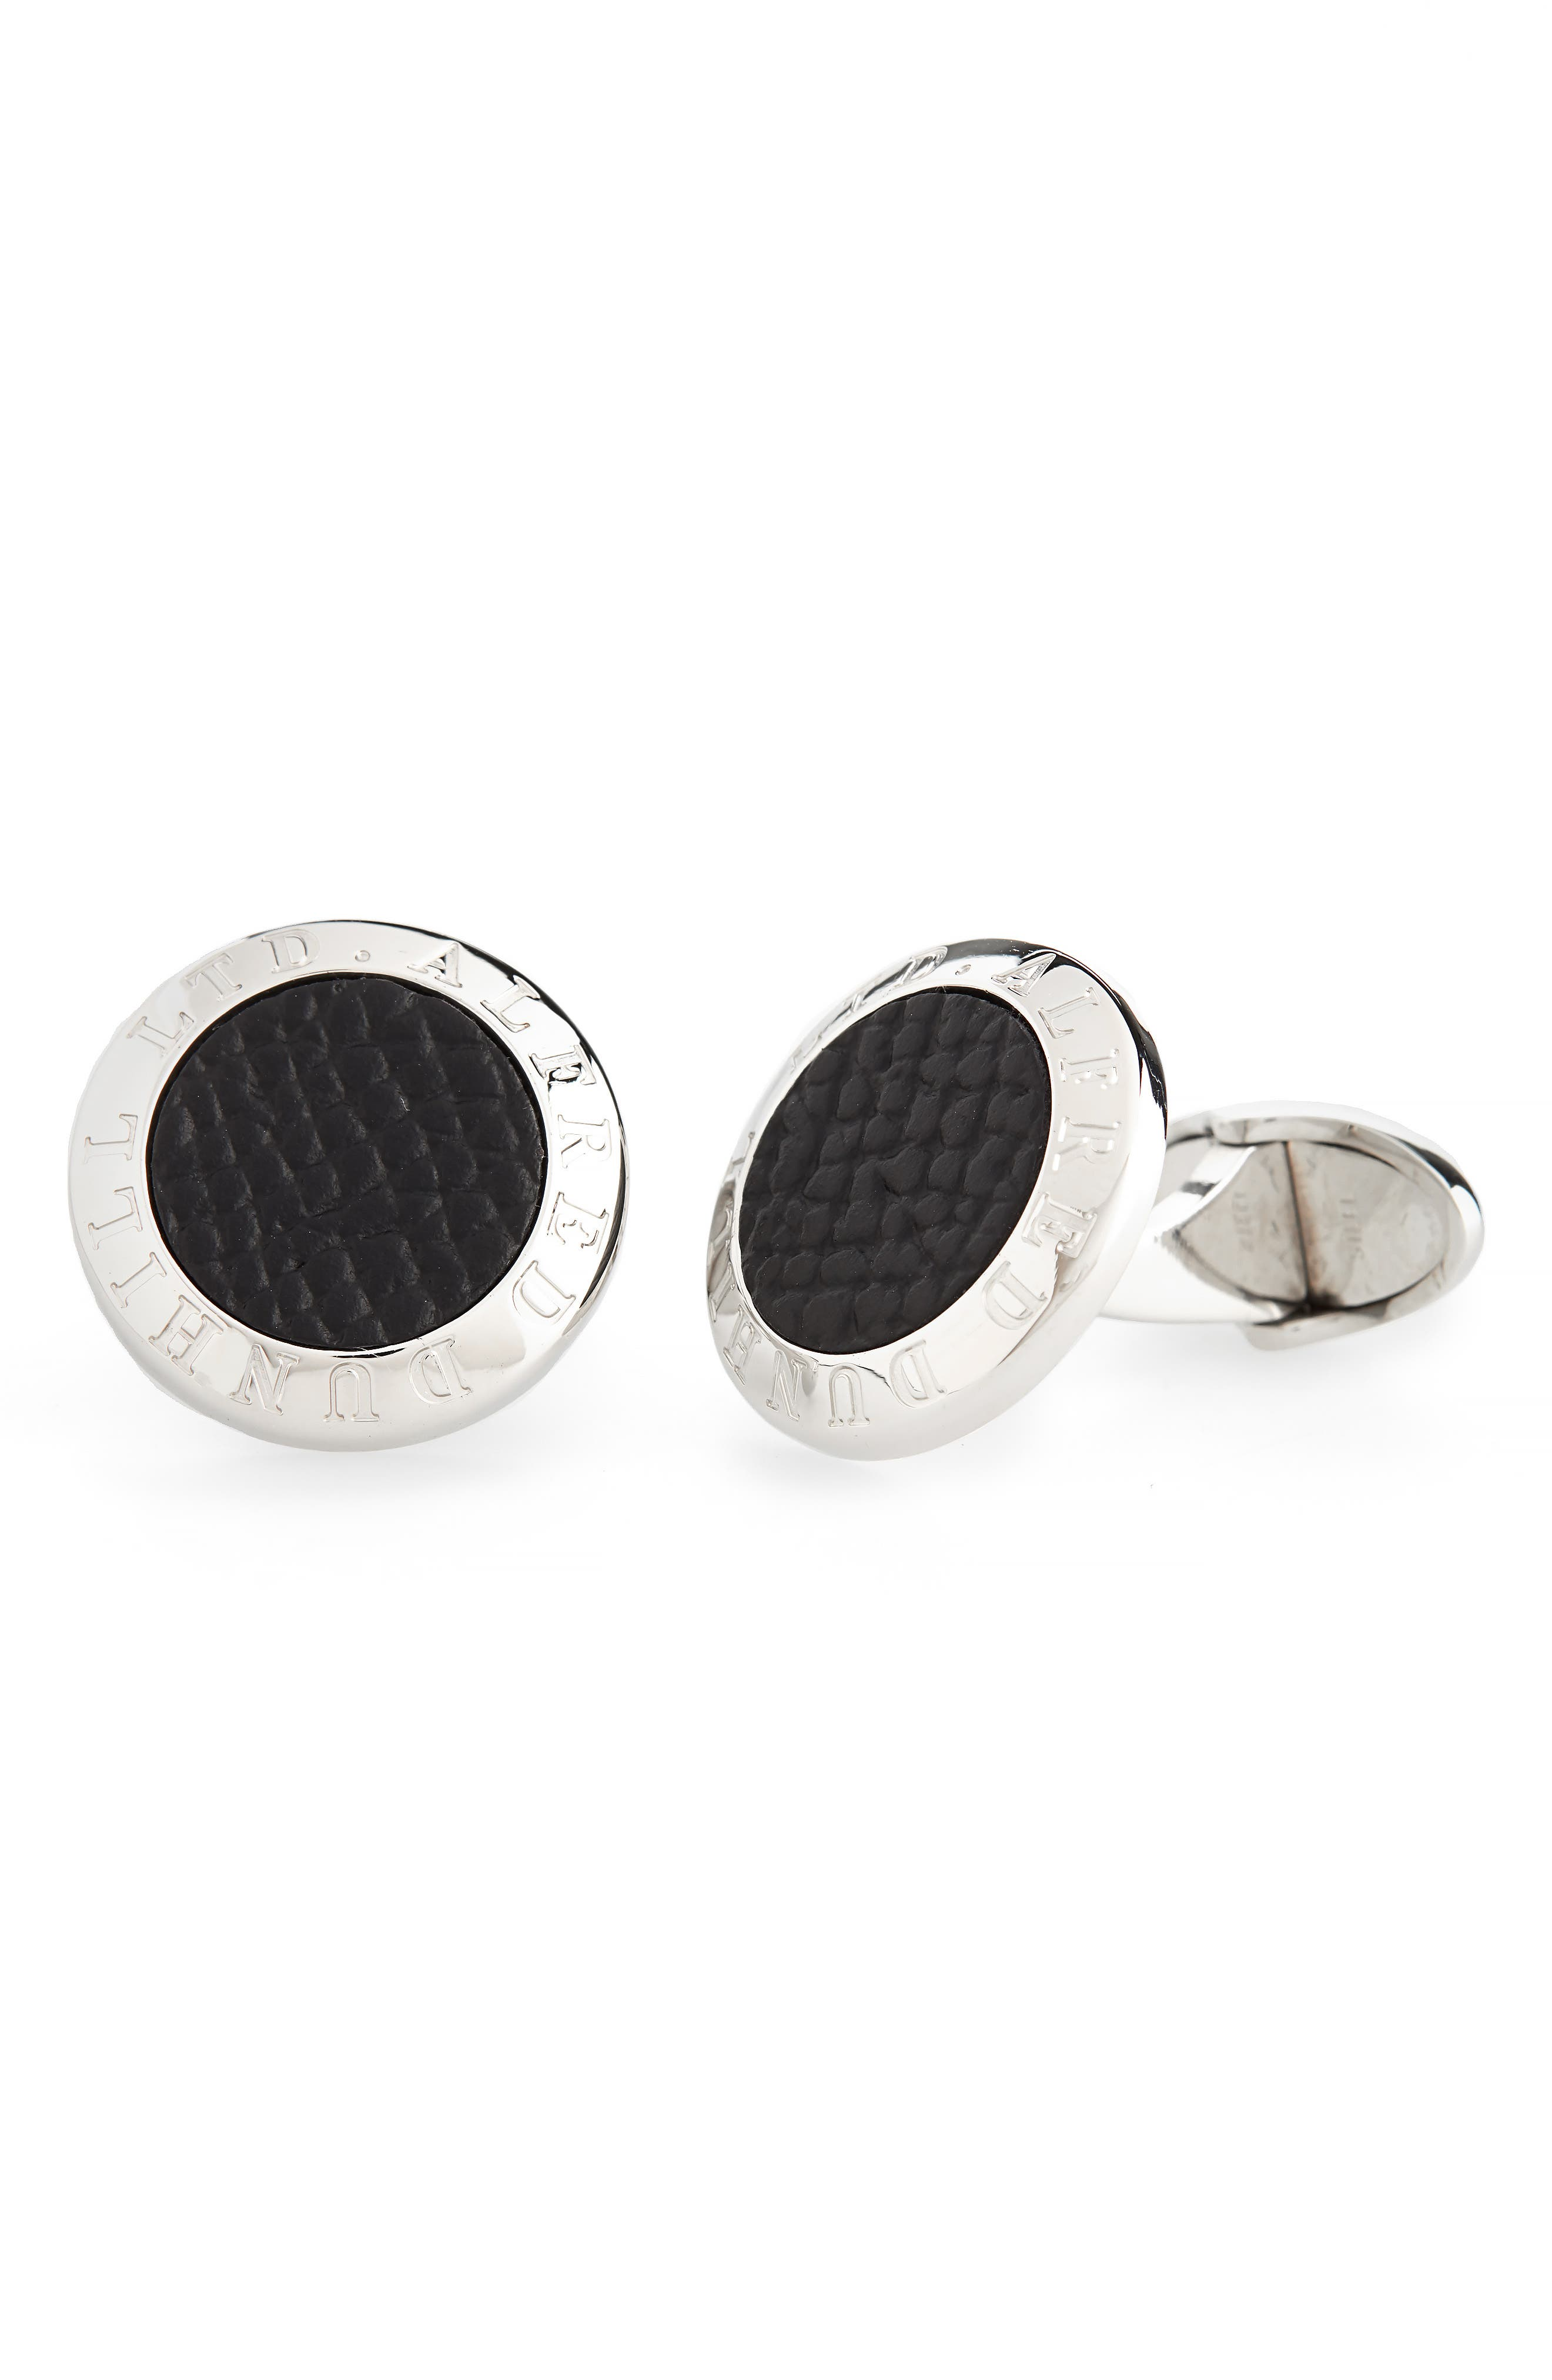 DUNHILL Ad Coin Cuff Links in Silver